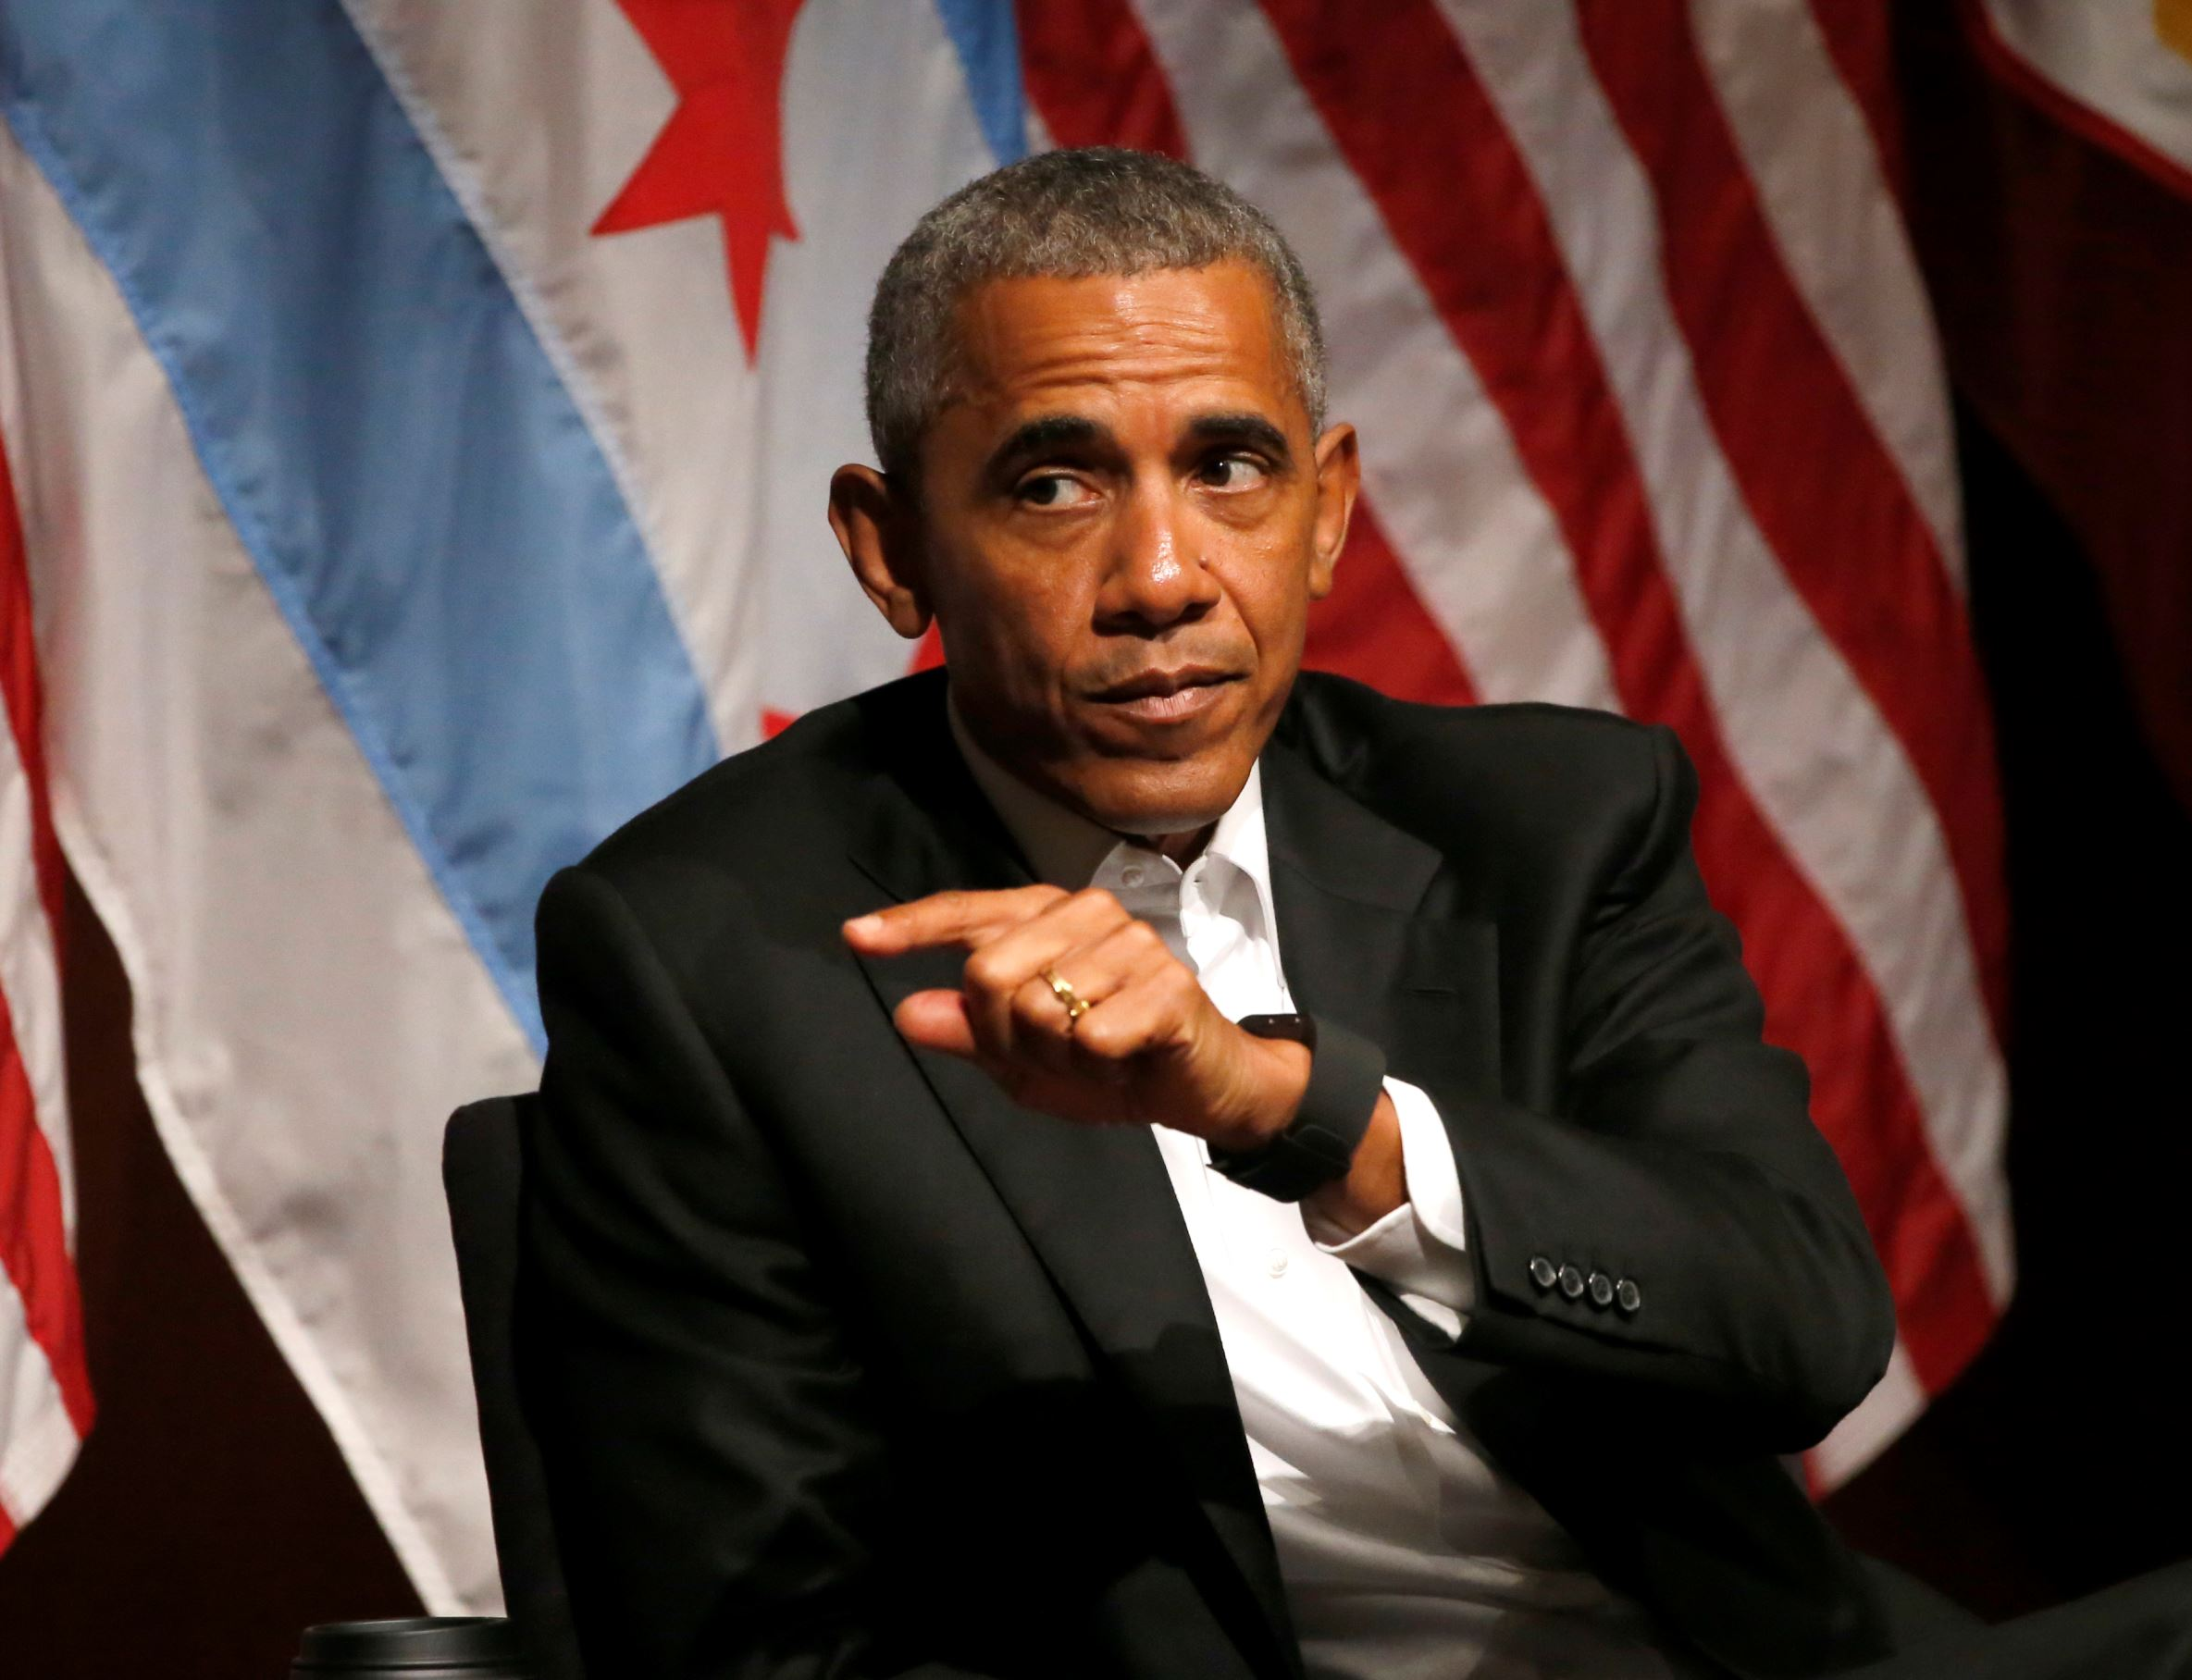 Former President Barack Obama hosts a conversation on civic engagement and community organizing, Monday, April 24, 2017, at the University of Chicago in Chicago. It's the former president's first public event of his post-presidential life in the place where he started his political career.